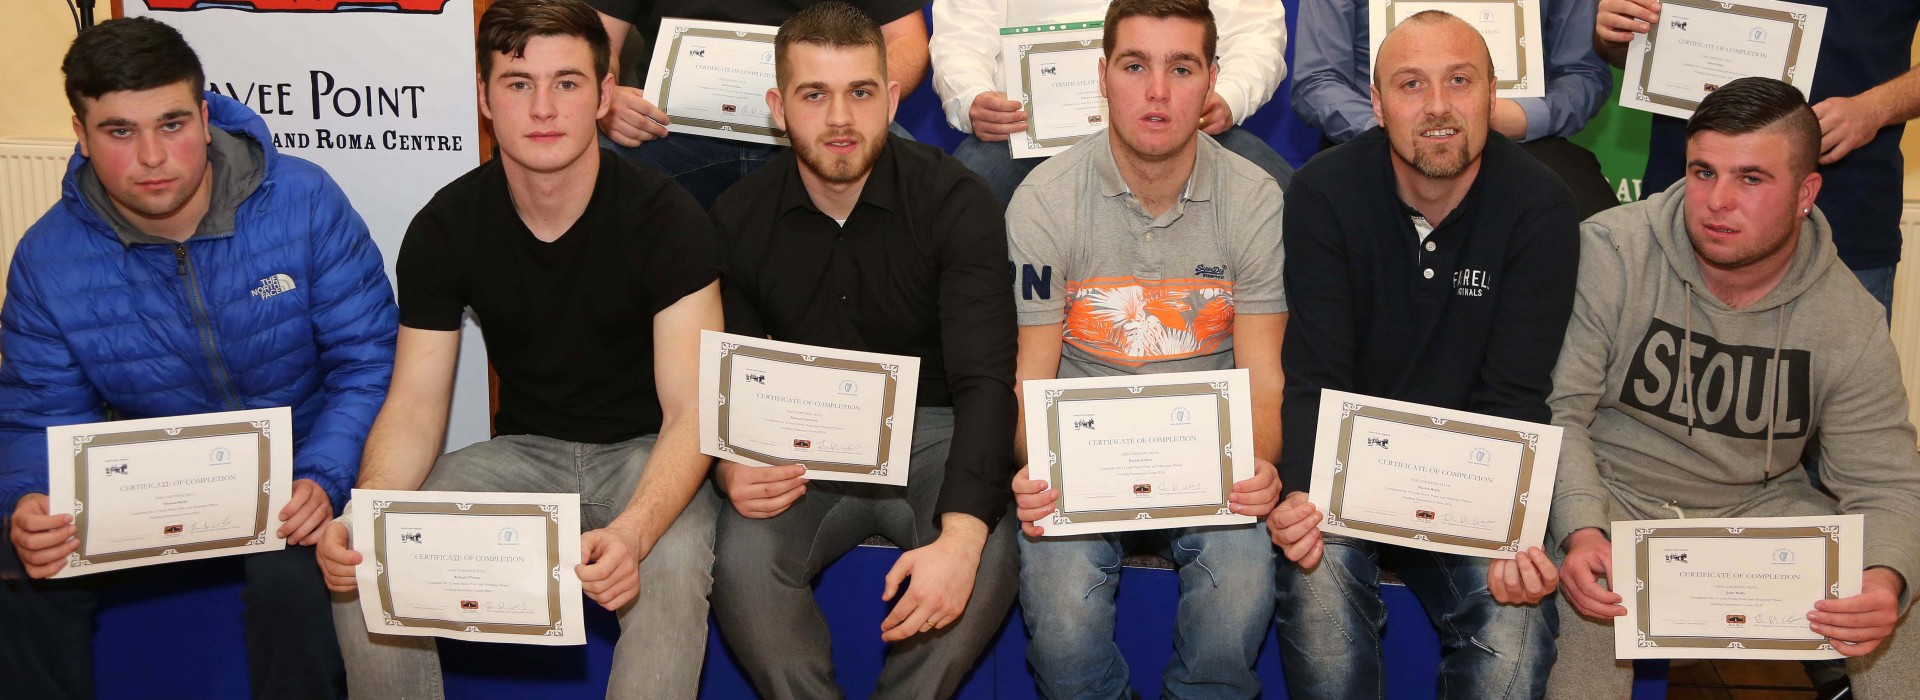 Some of the graduates from the Mountjoy Prison Feuding Deterrence Course. ©Photo by Derek Speirs